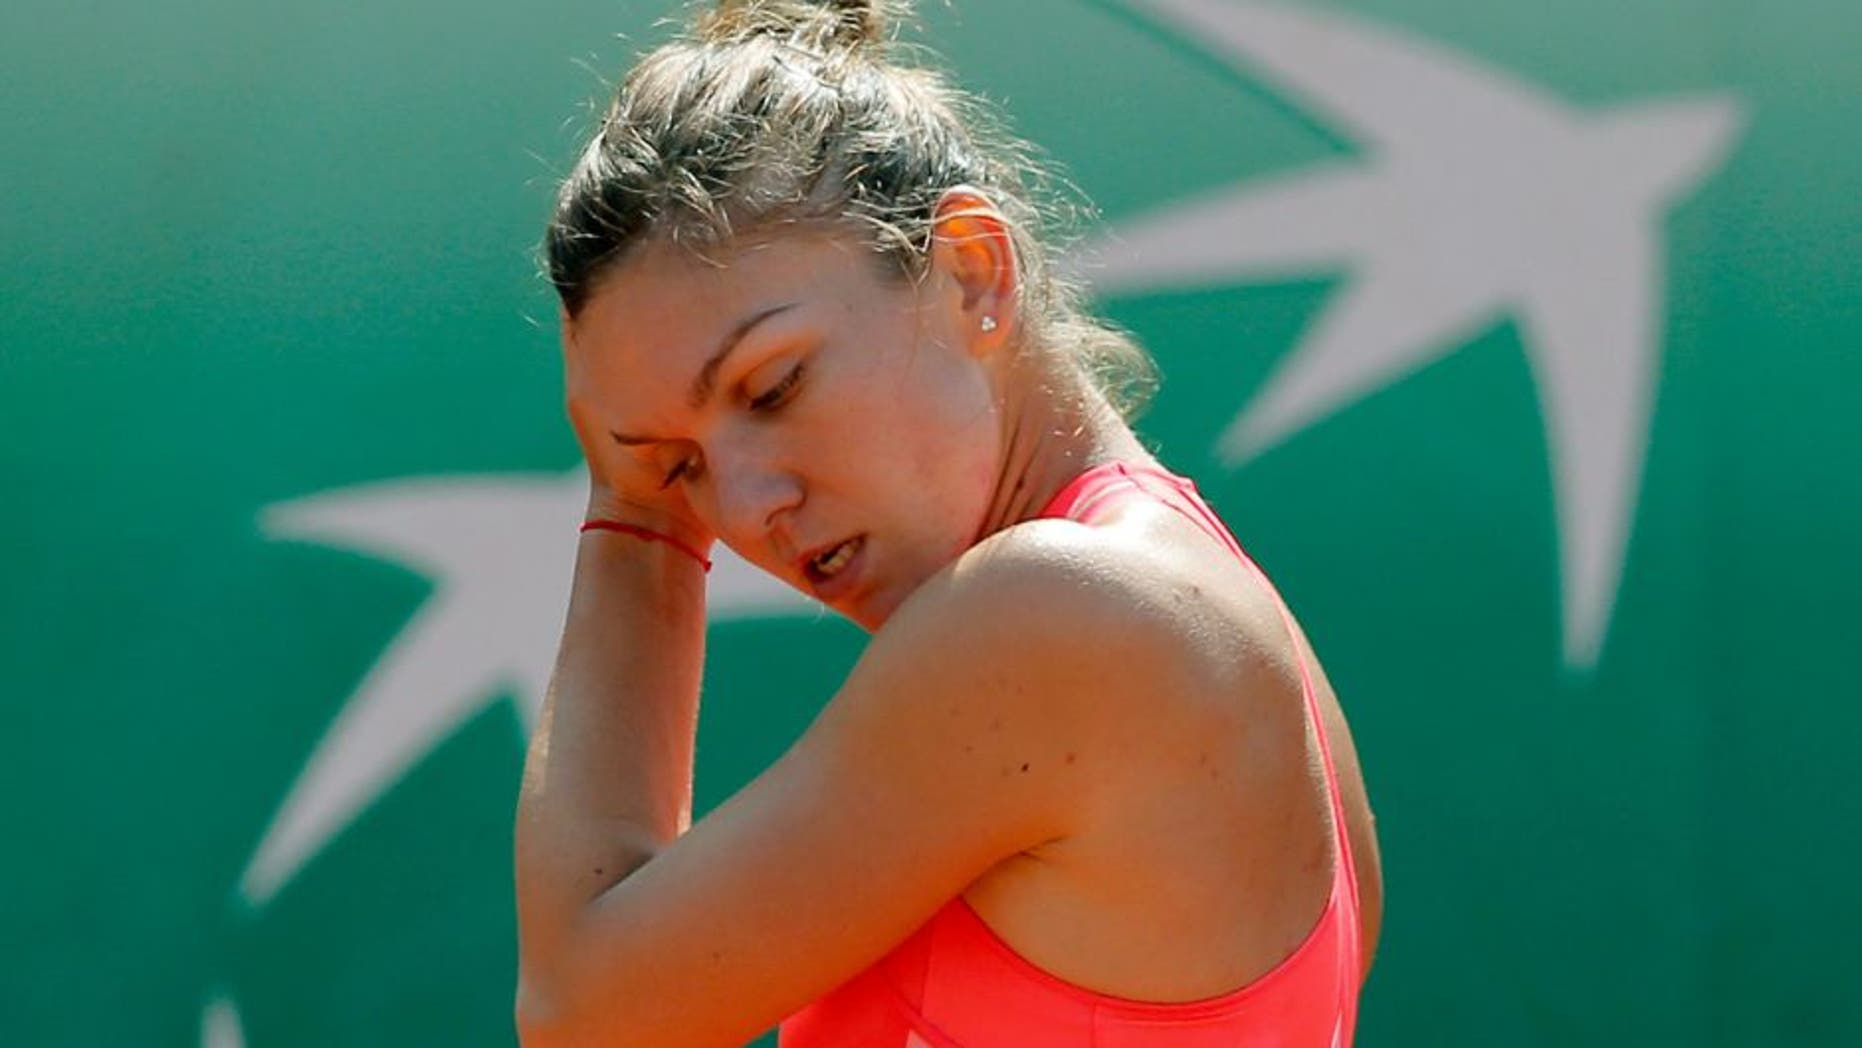 Romania's Simona Halep holds her head after missing a return in the second round match of the French Open tennis tournament against Croatia's Mirjana Lucic-Baroni at the Roland Garros stadium, in Paris, France, Wednesday, May 27, 2015. Lucic-Baroni won in two sets 7-5, 6-1. (AP Photo/Christophe Ena)